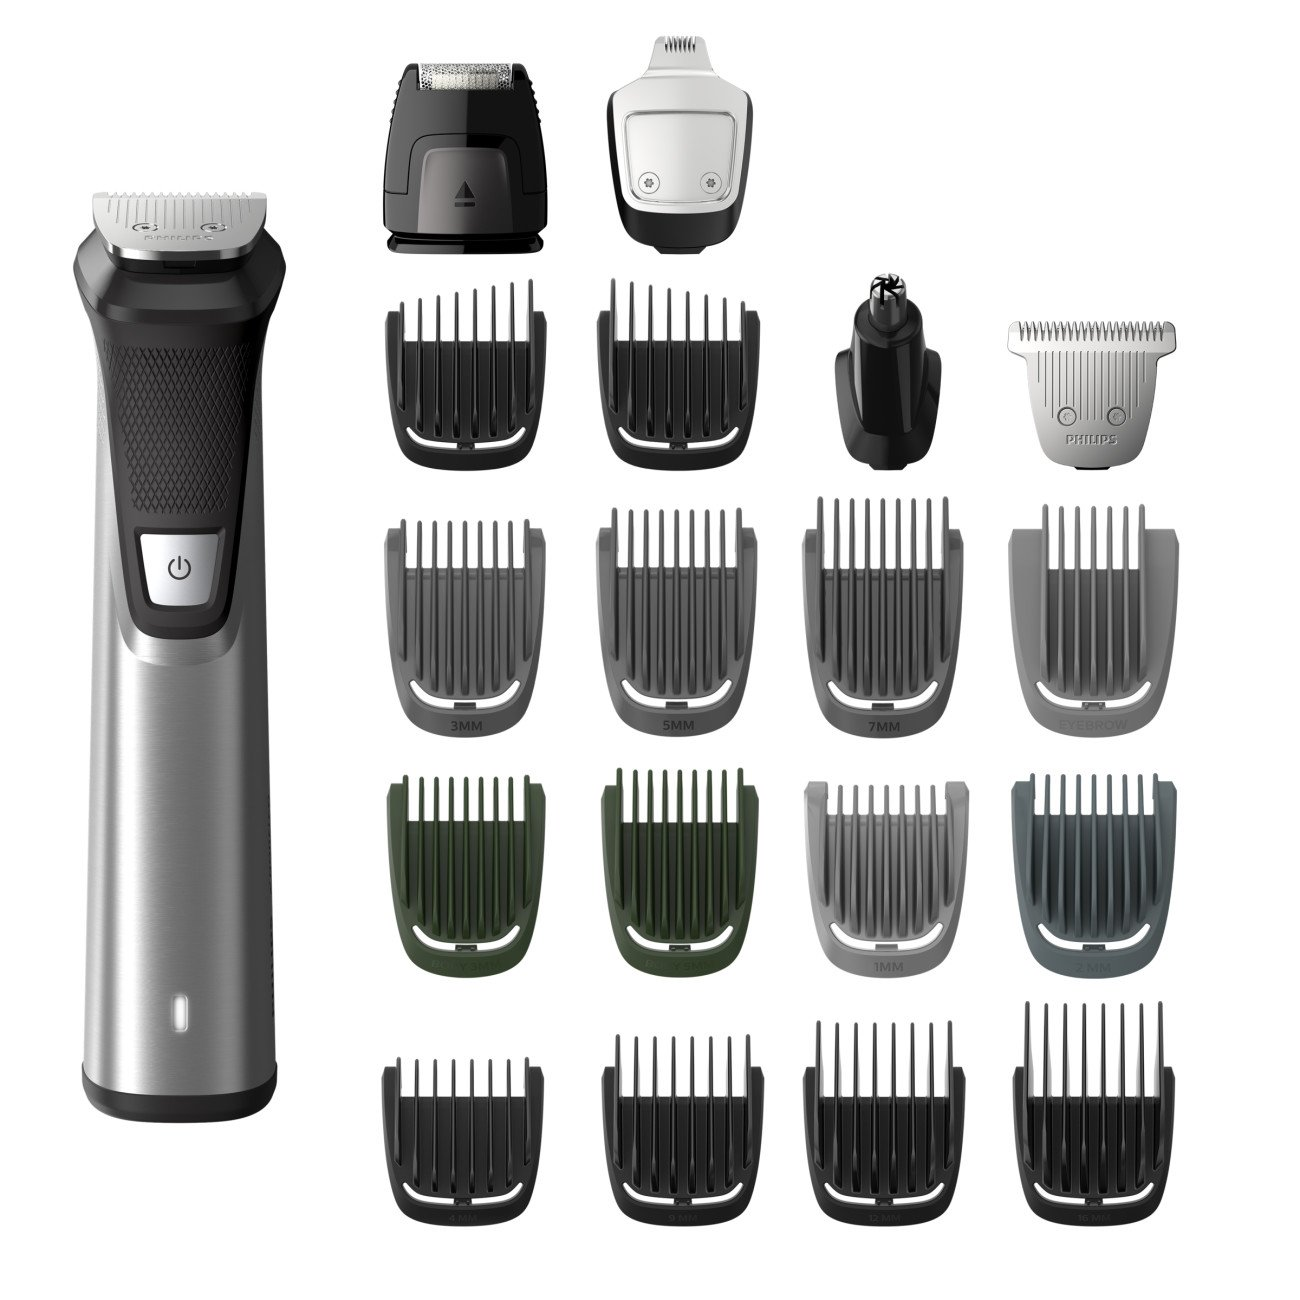 Best Beard Trimmer for Men in 2018 Review